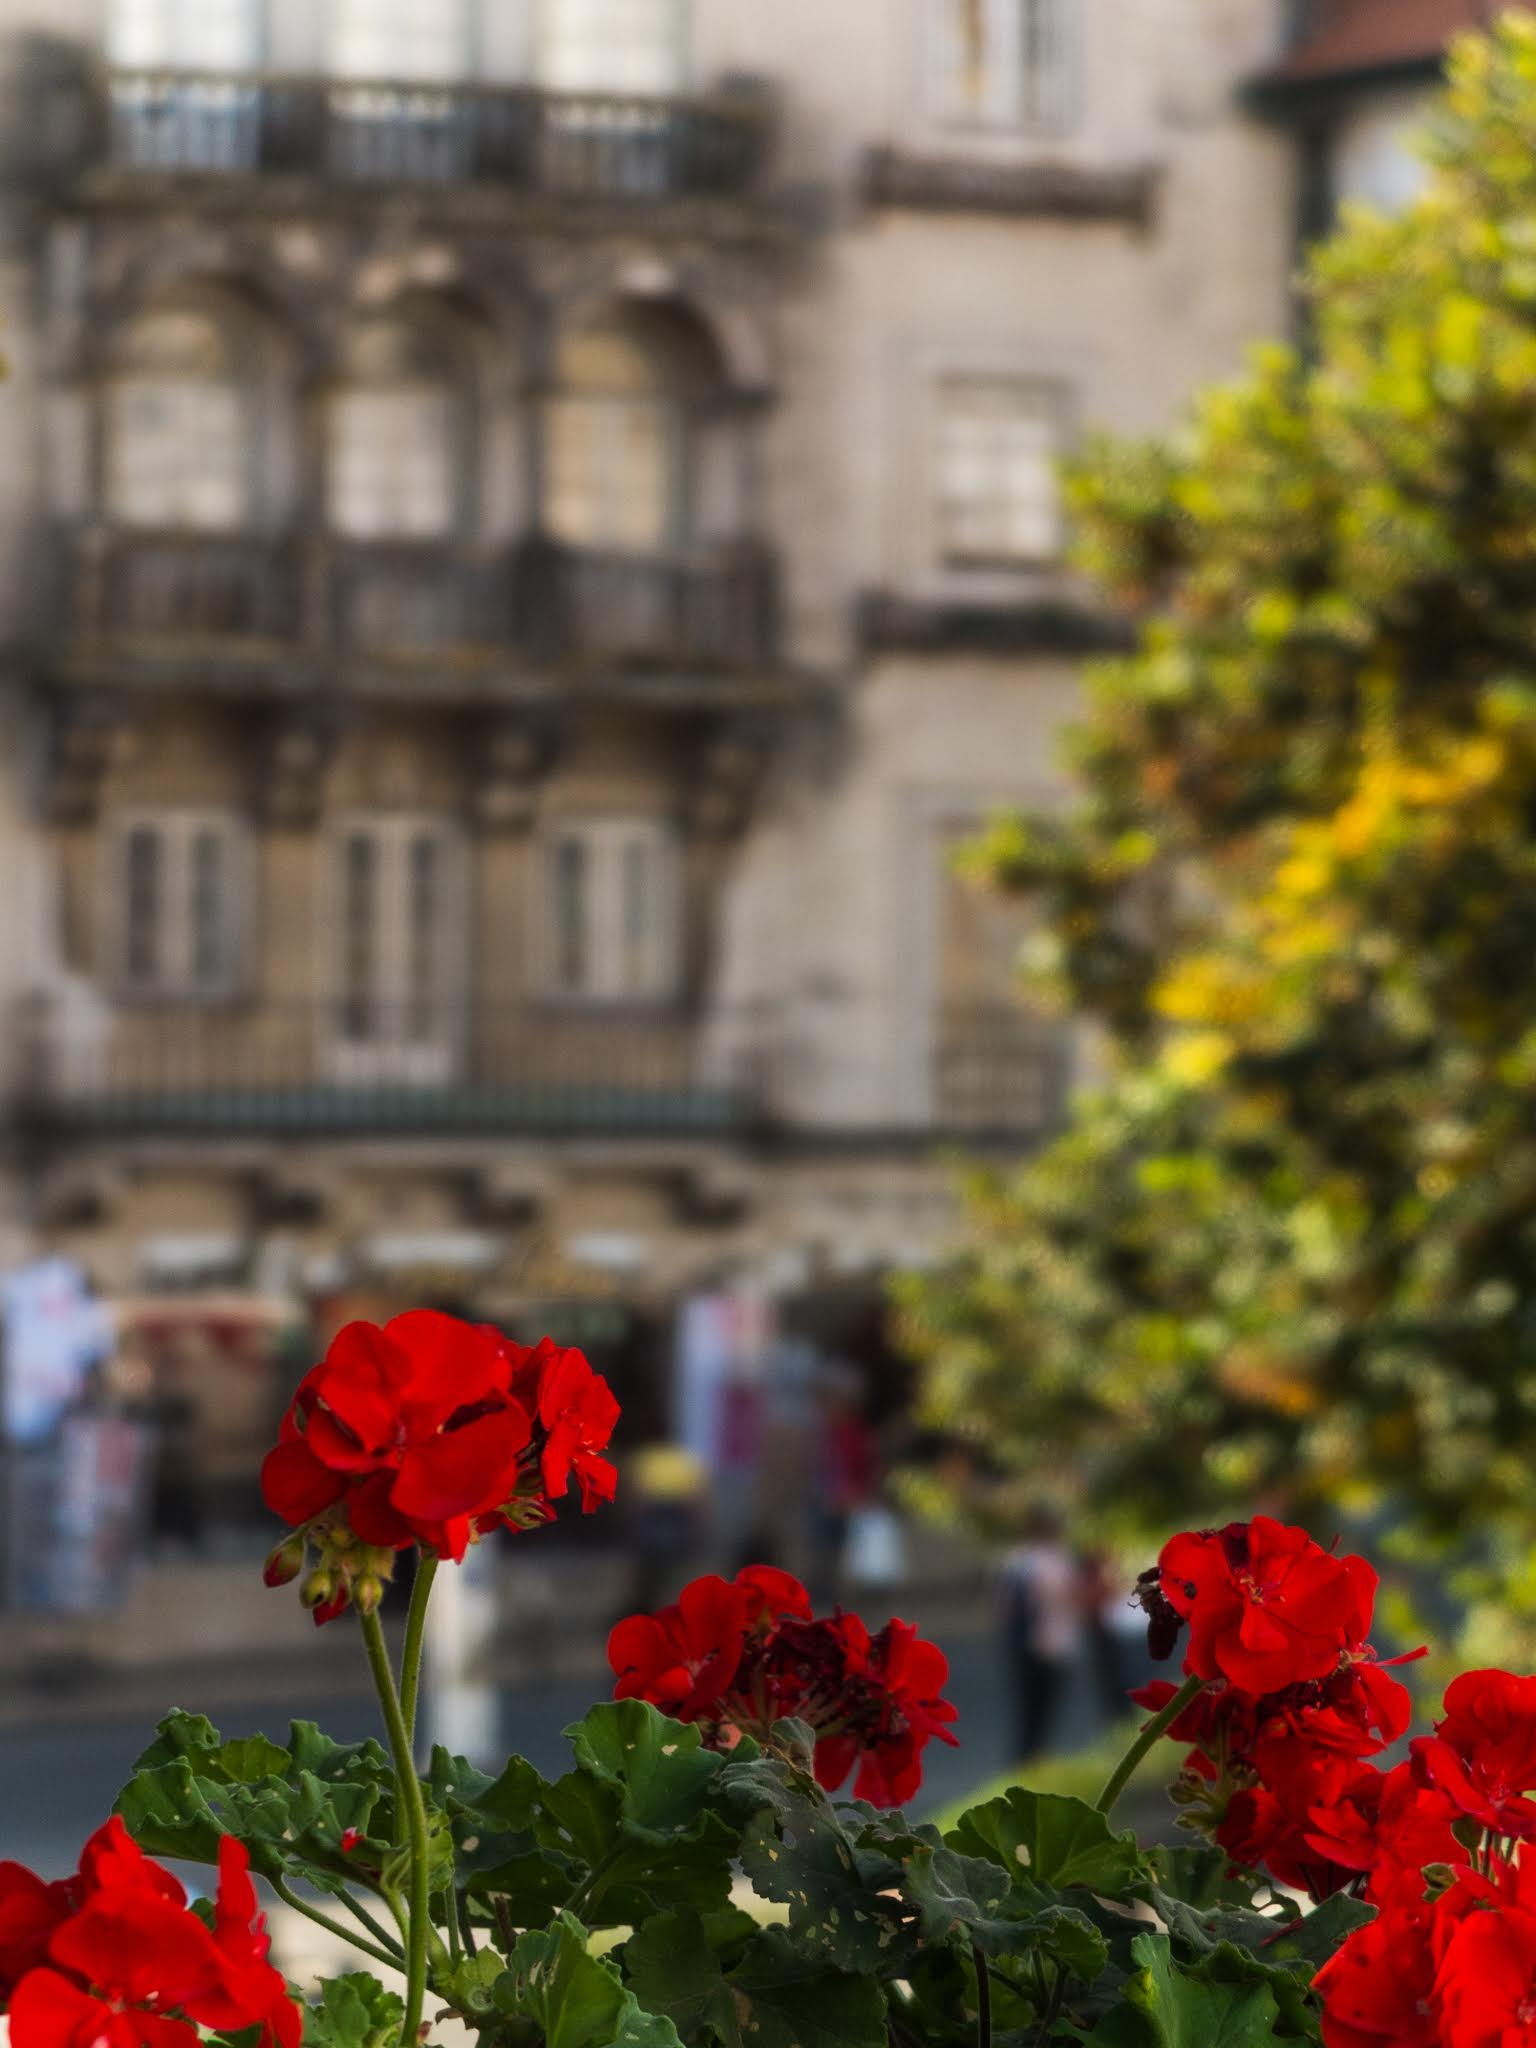 A close up of red Geraniums in front of a building in Sintra.